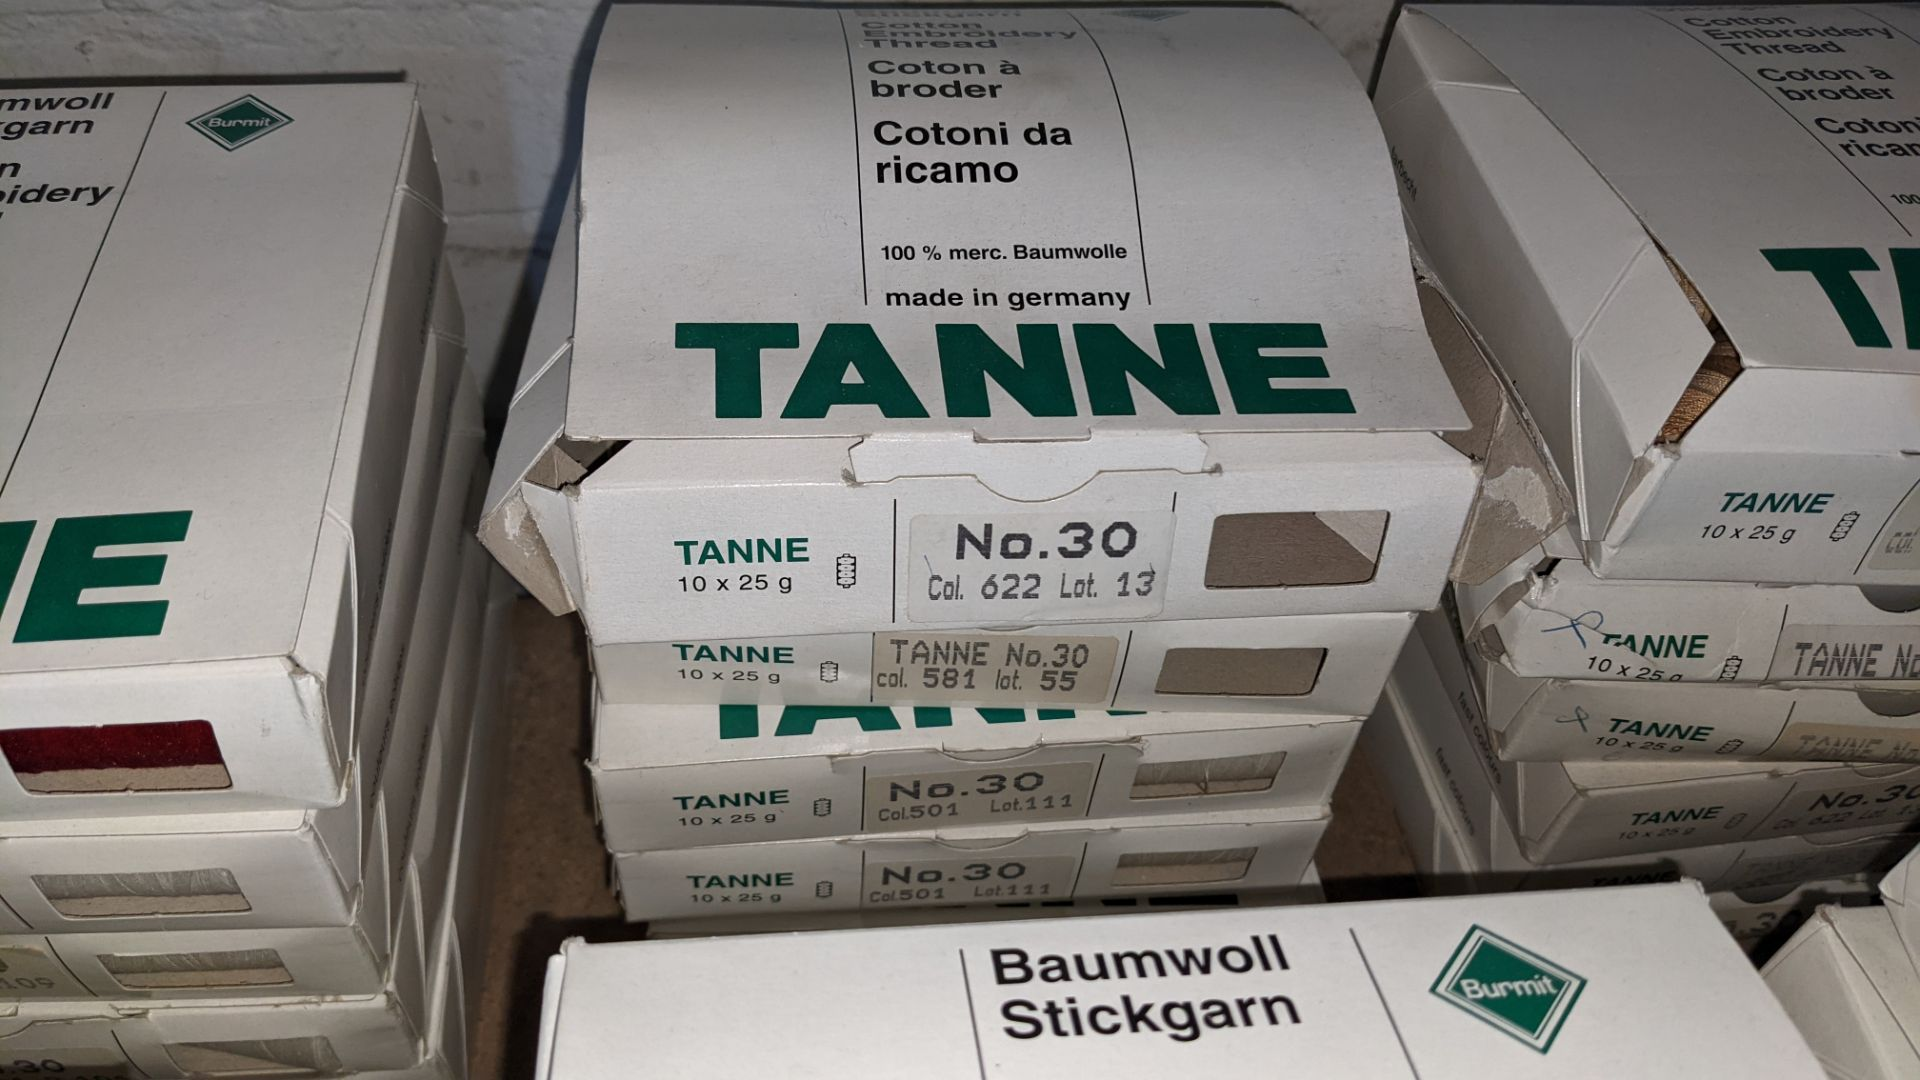 18 boxes of Madeira Tanne (Burmit) cotton embroidery thread - Image 5 of 8